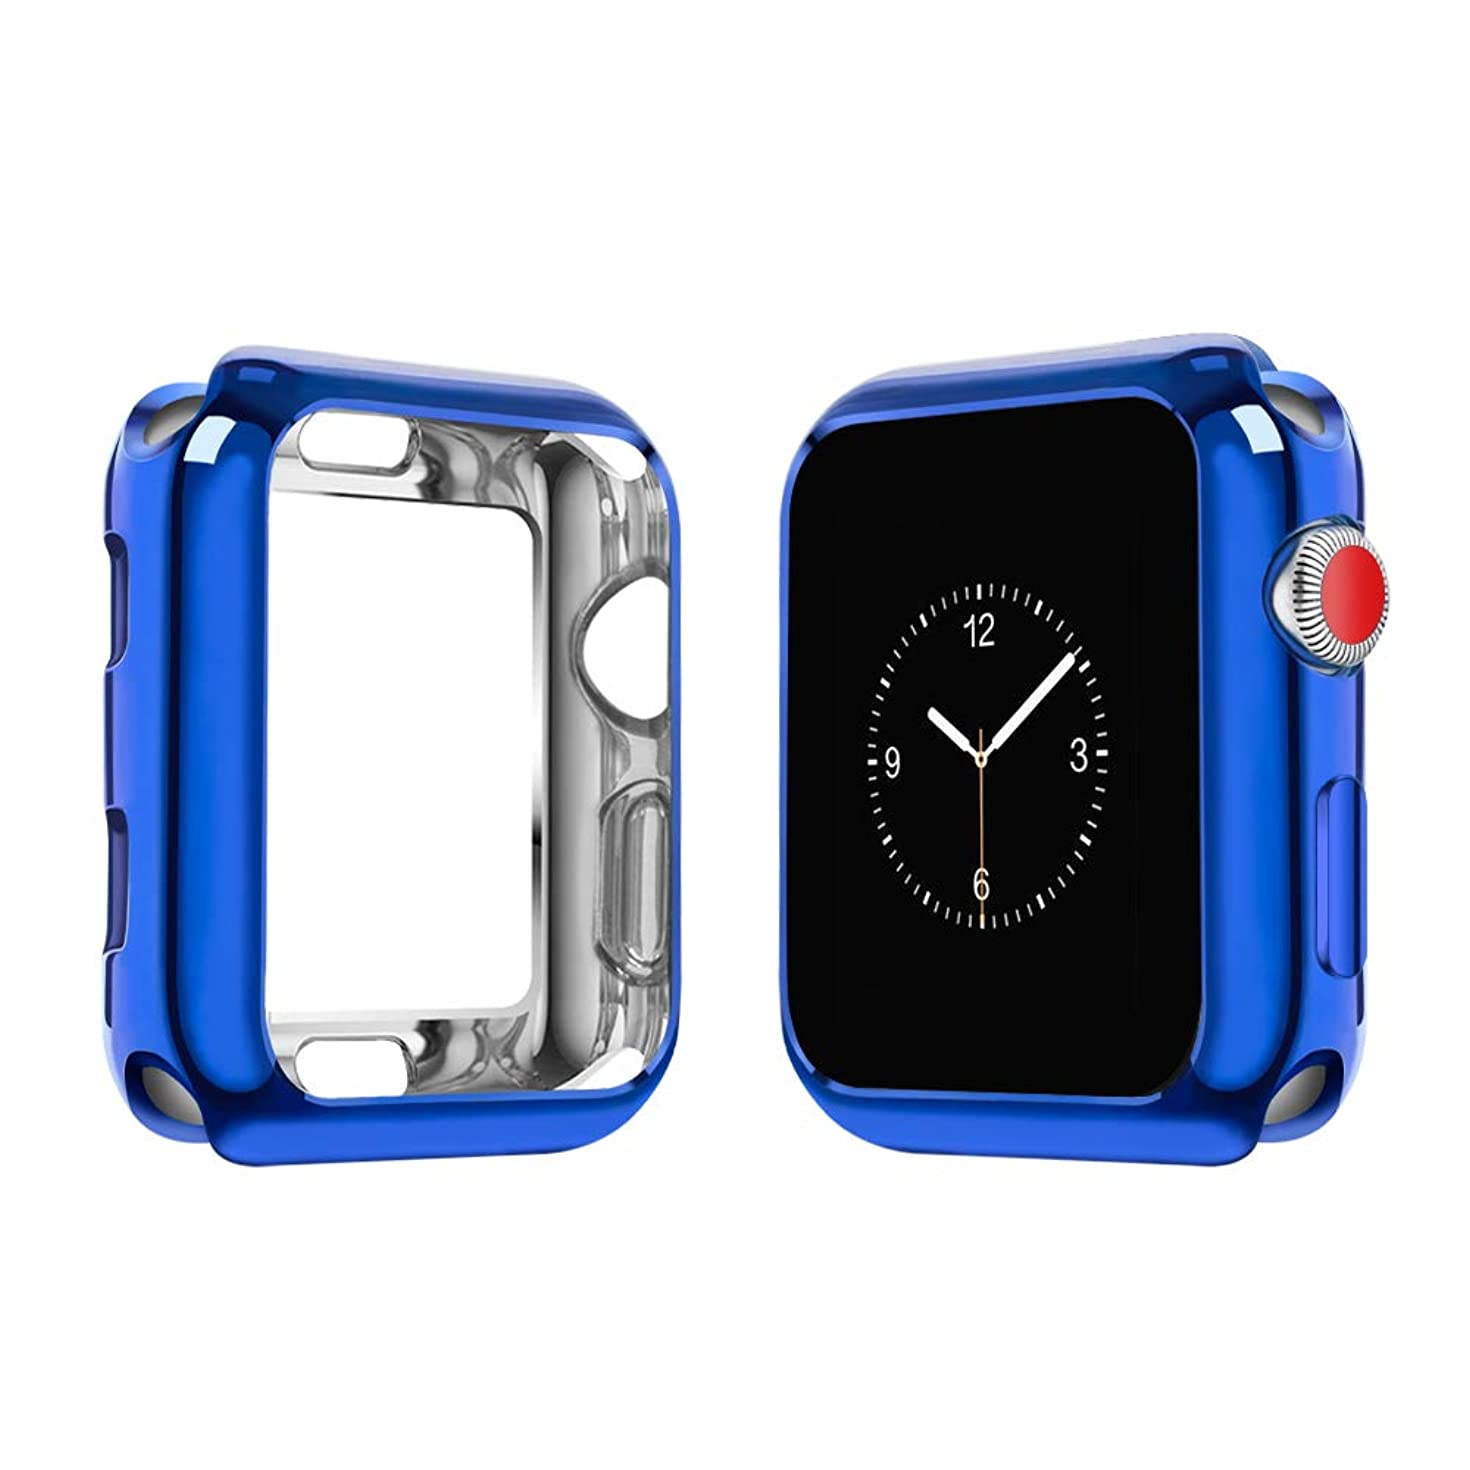 top4cus Environmental Soft Flexible TPU Anti-Scratch Lightweight Protective 42mm Iwatch Case Compatible Apple Watch Series 4 Series 3 Series 2 Series 1 - Royal Blue